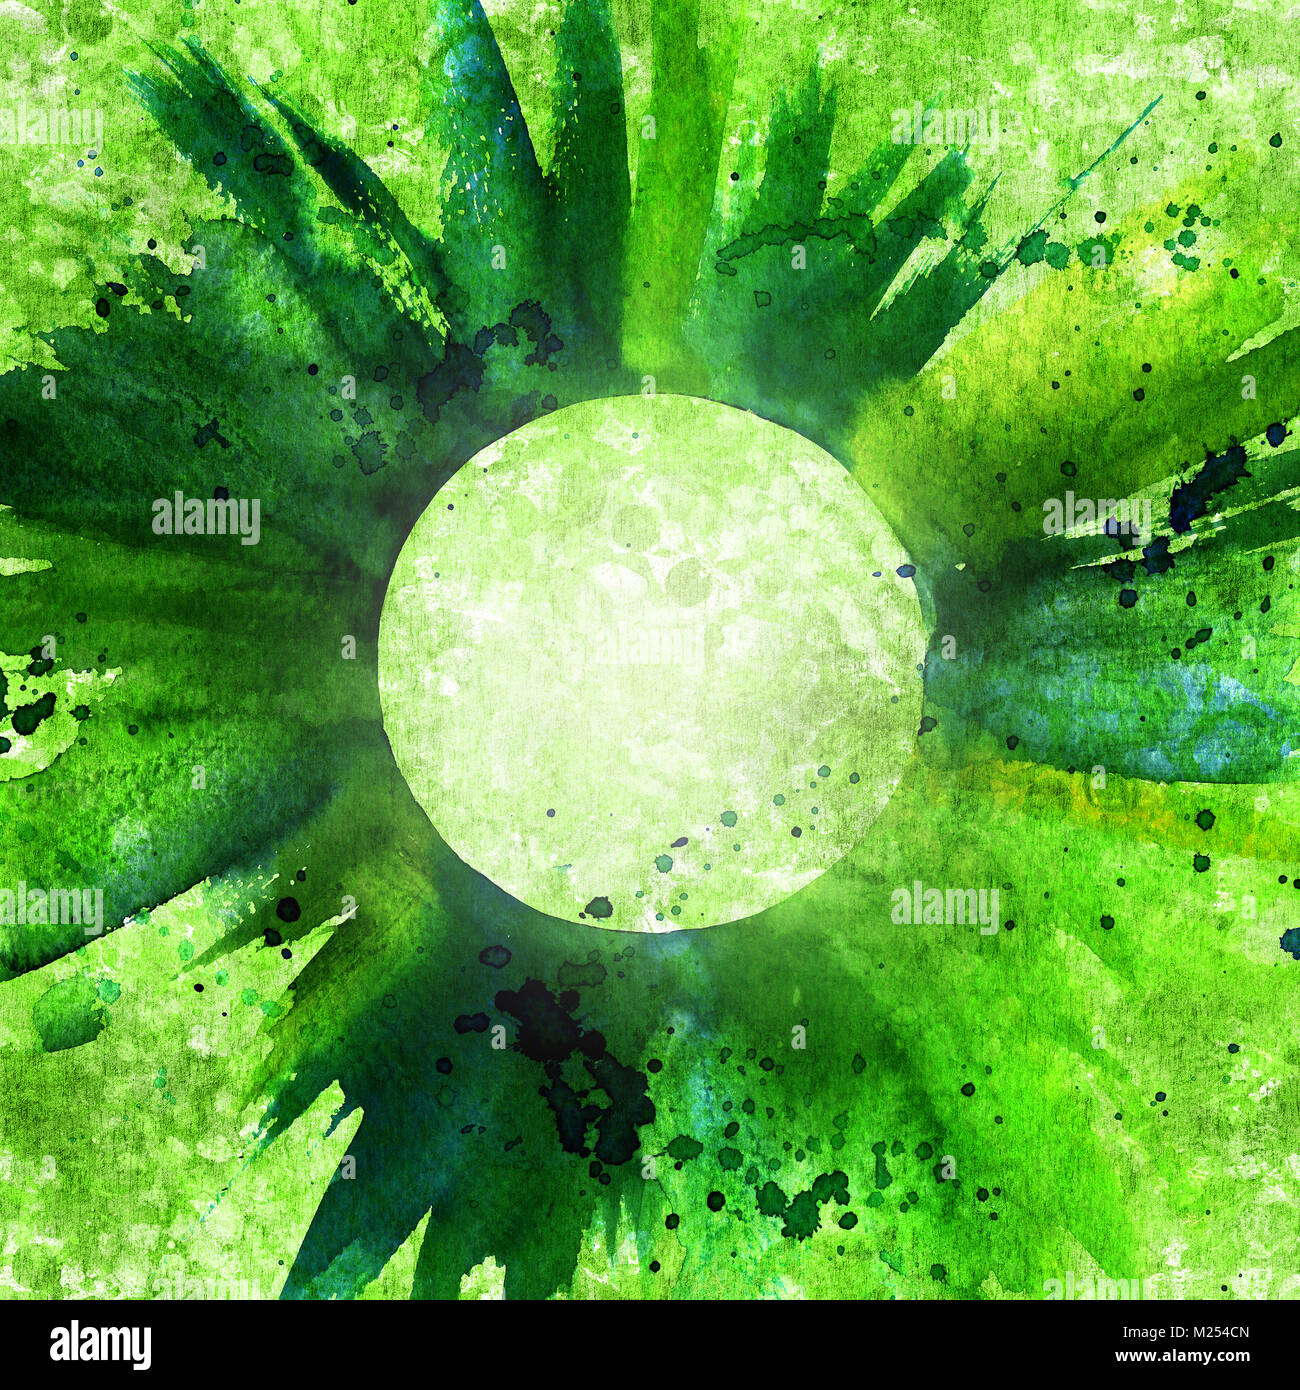 Abstract green background texture with brush strokes - Stock Image